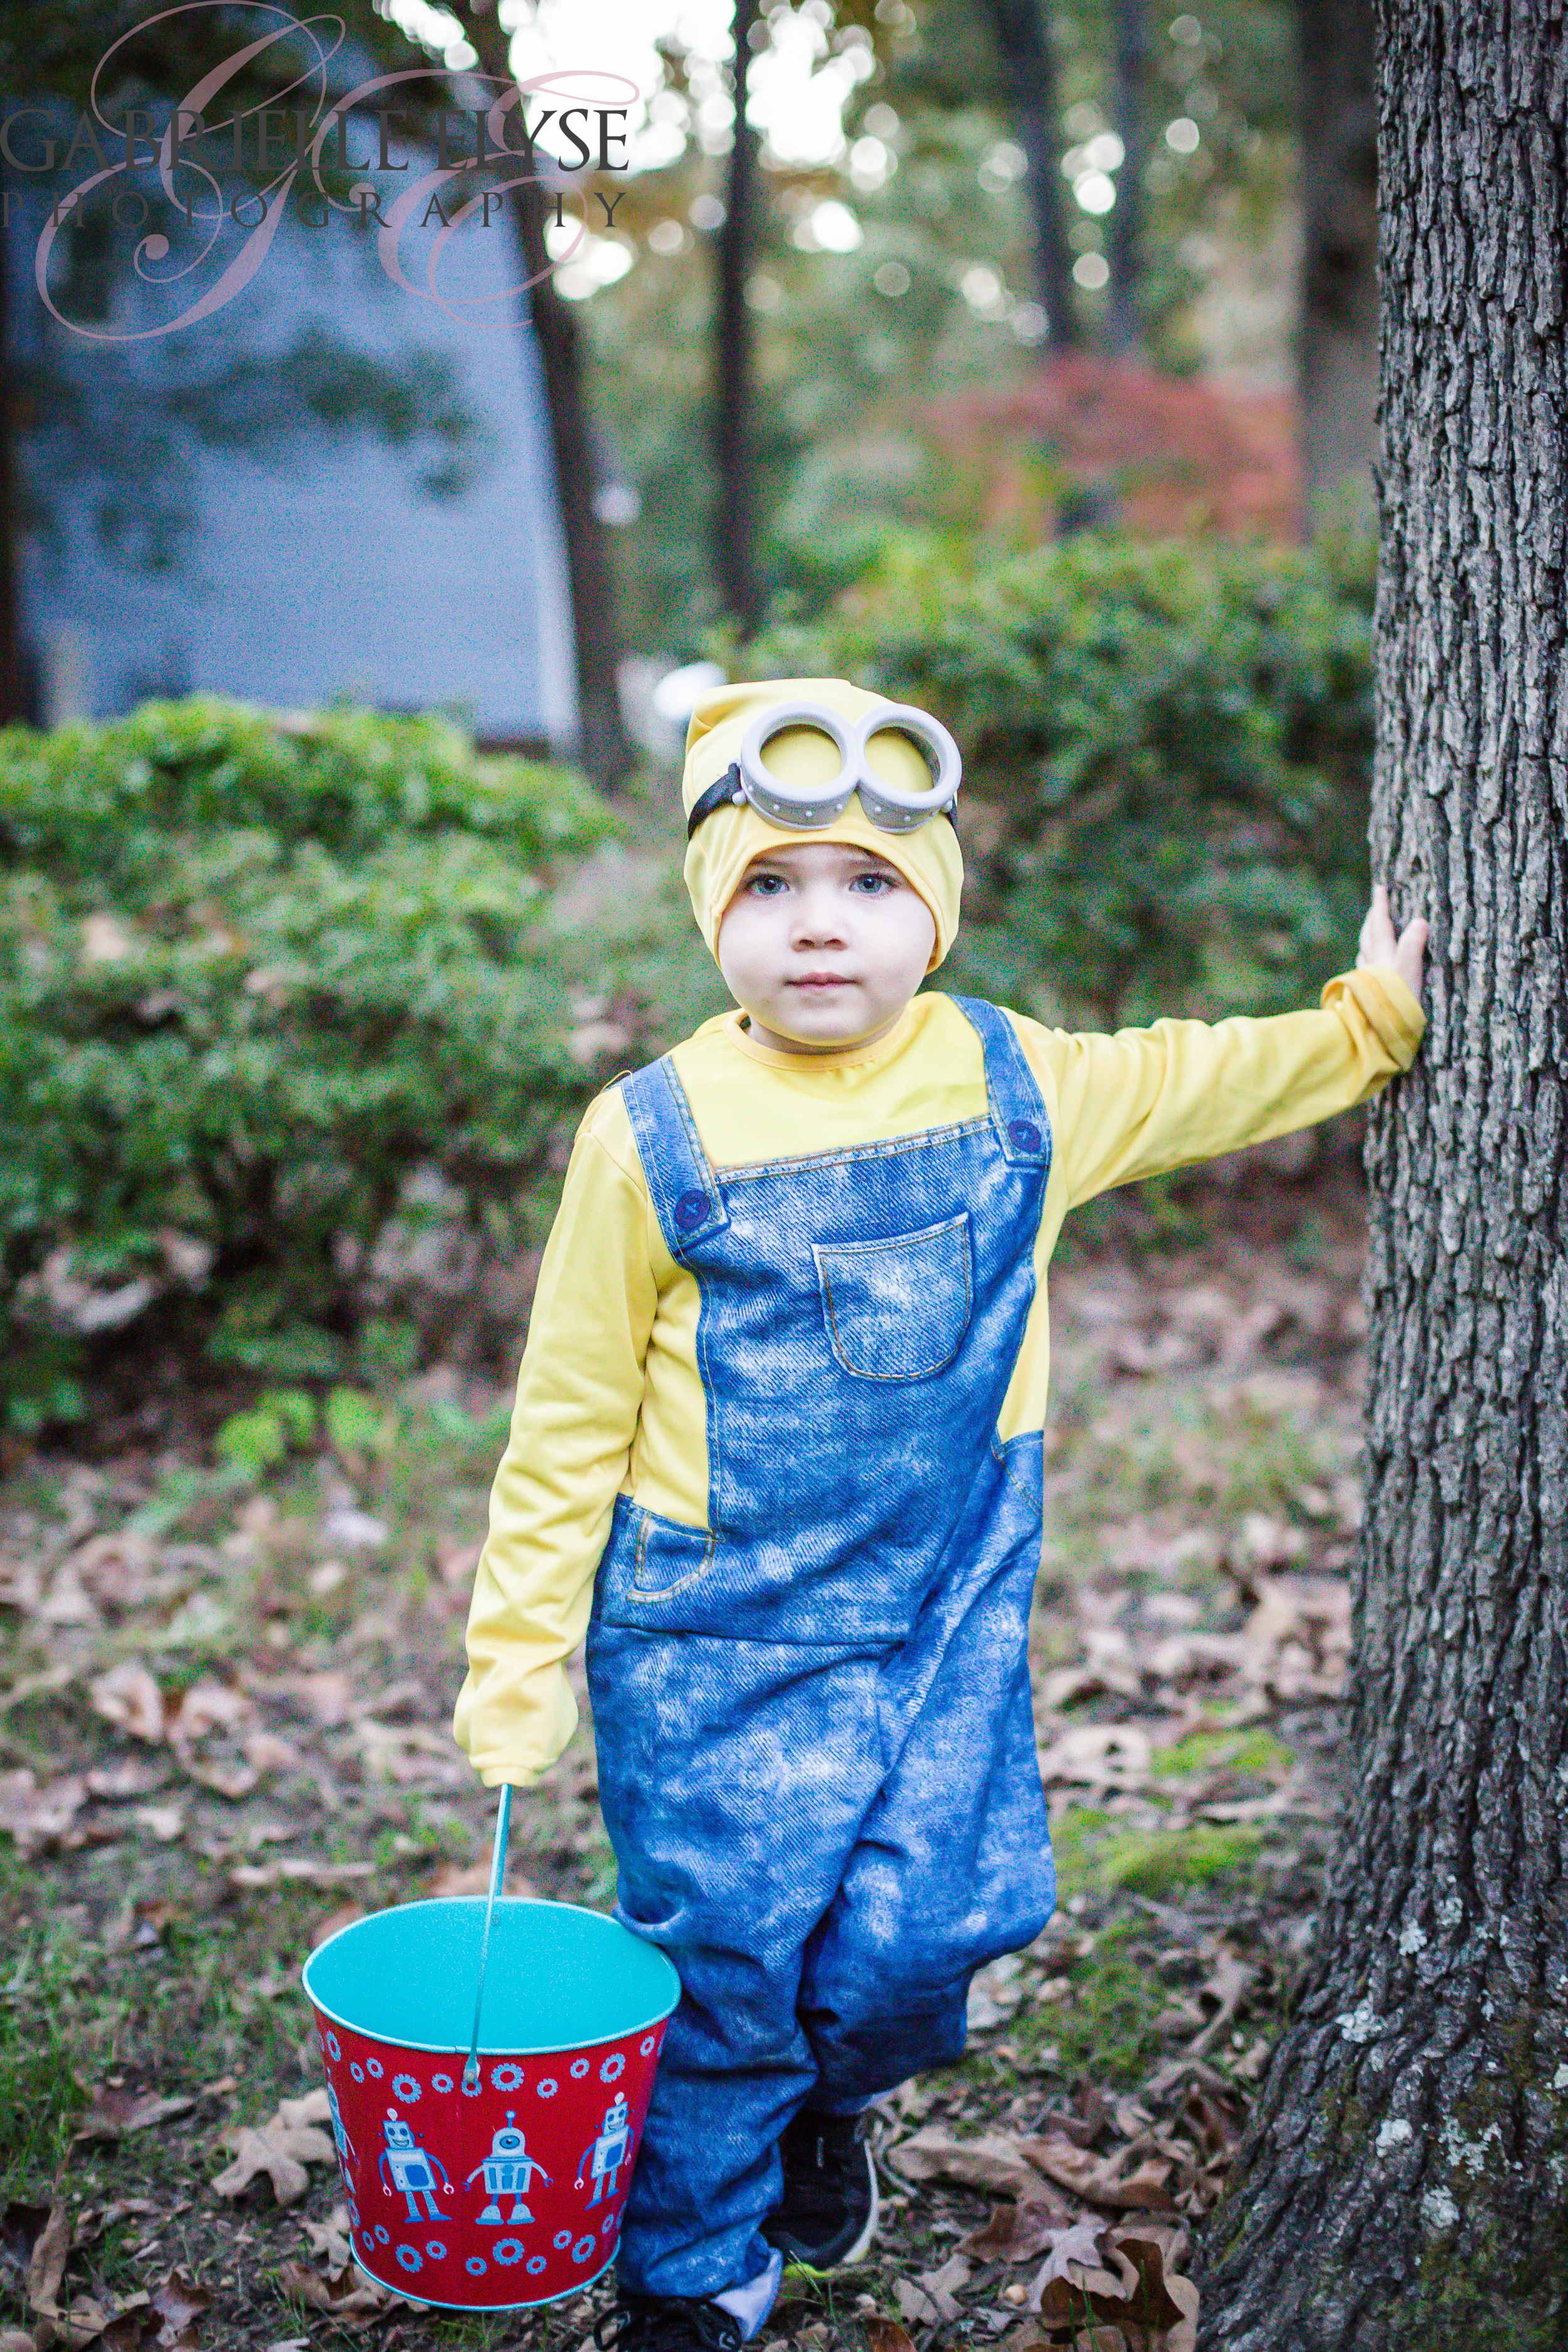 He is such a ham.  Cutest.minion.ever!